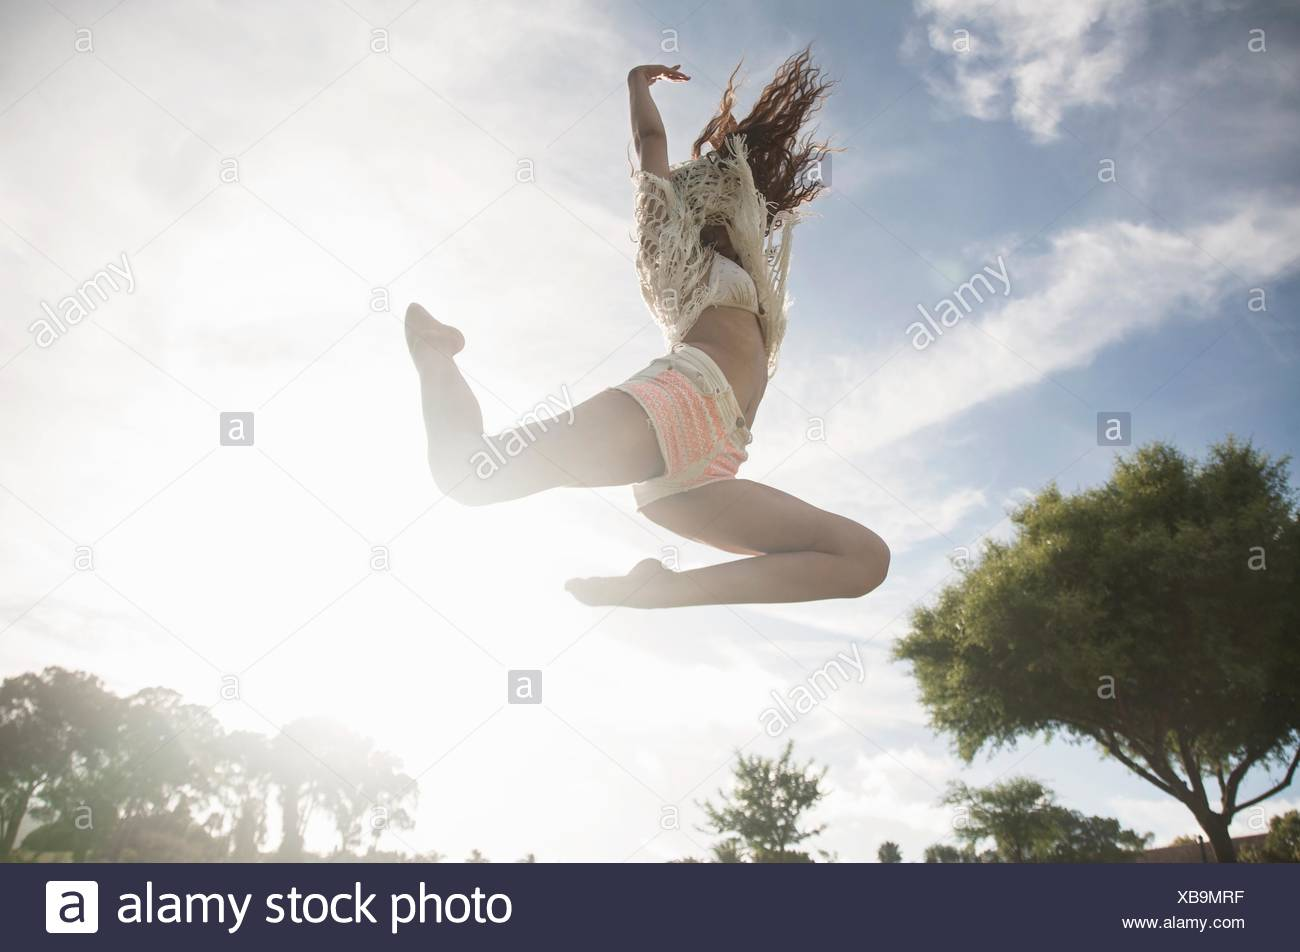 Low angle view of young woman jumping in mid air, arms raised - Stock Image